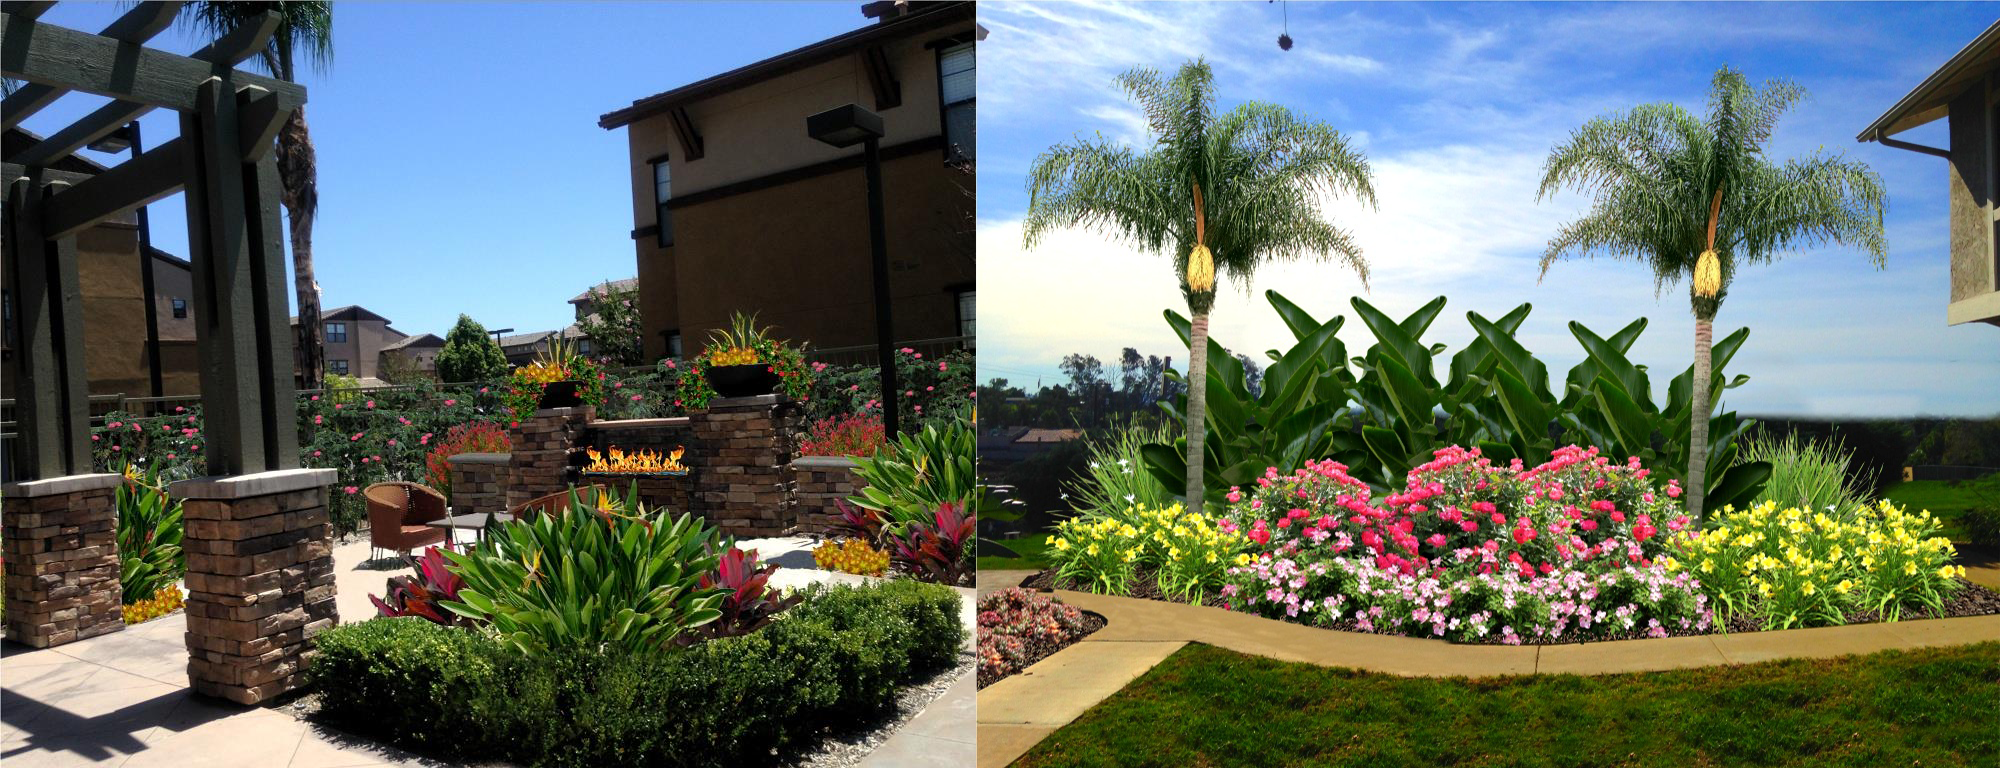 Ideas Become Reality With Expert Landscape Designers - Benchmark LandscapeBenchmark Landscape